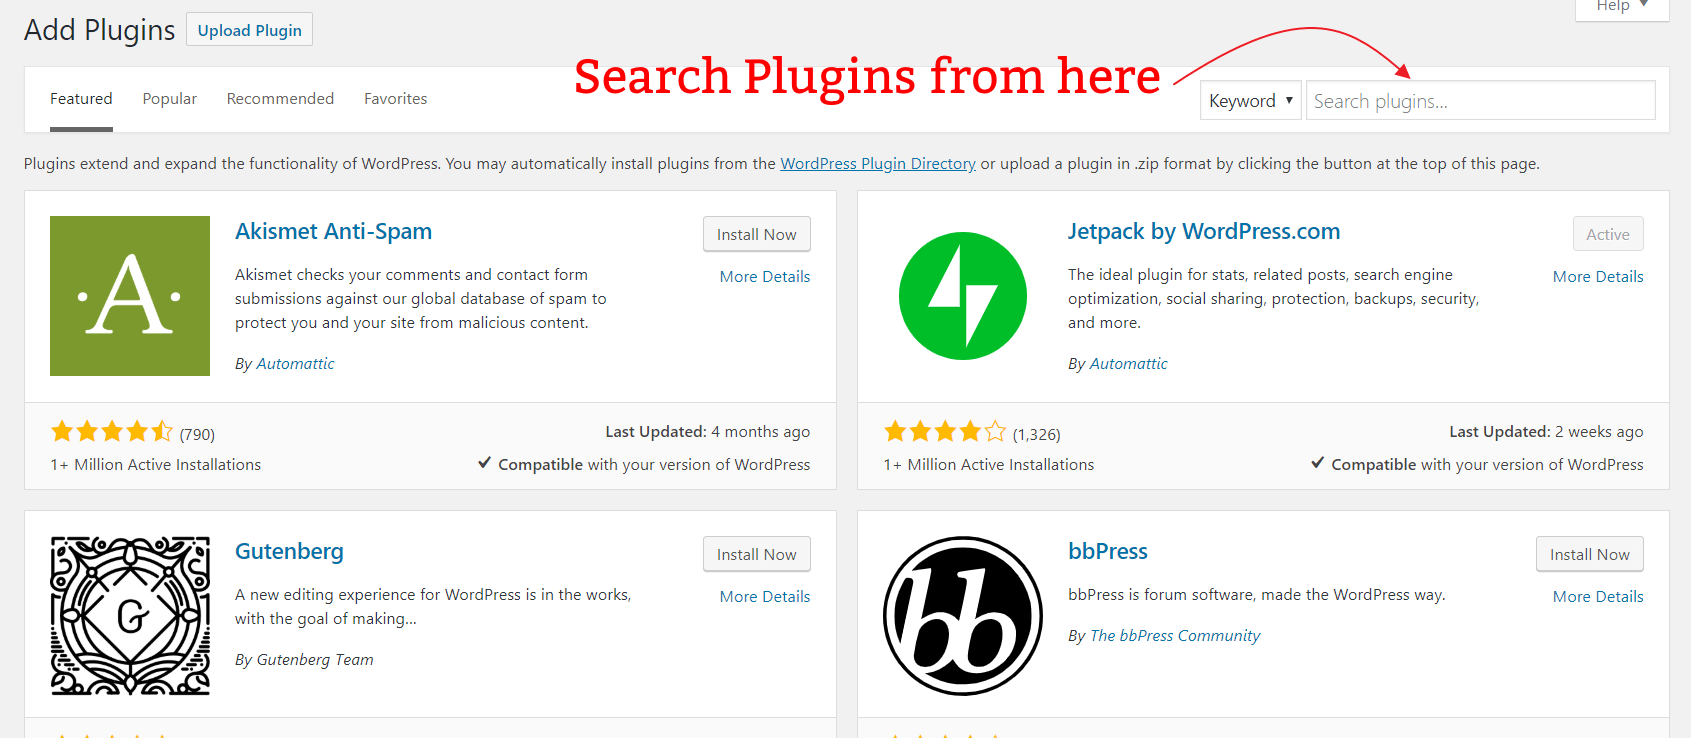 How to Install a WordPress Plugin Step by Step - 2